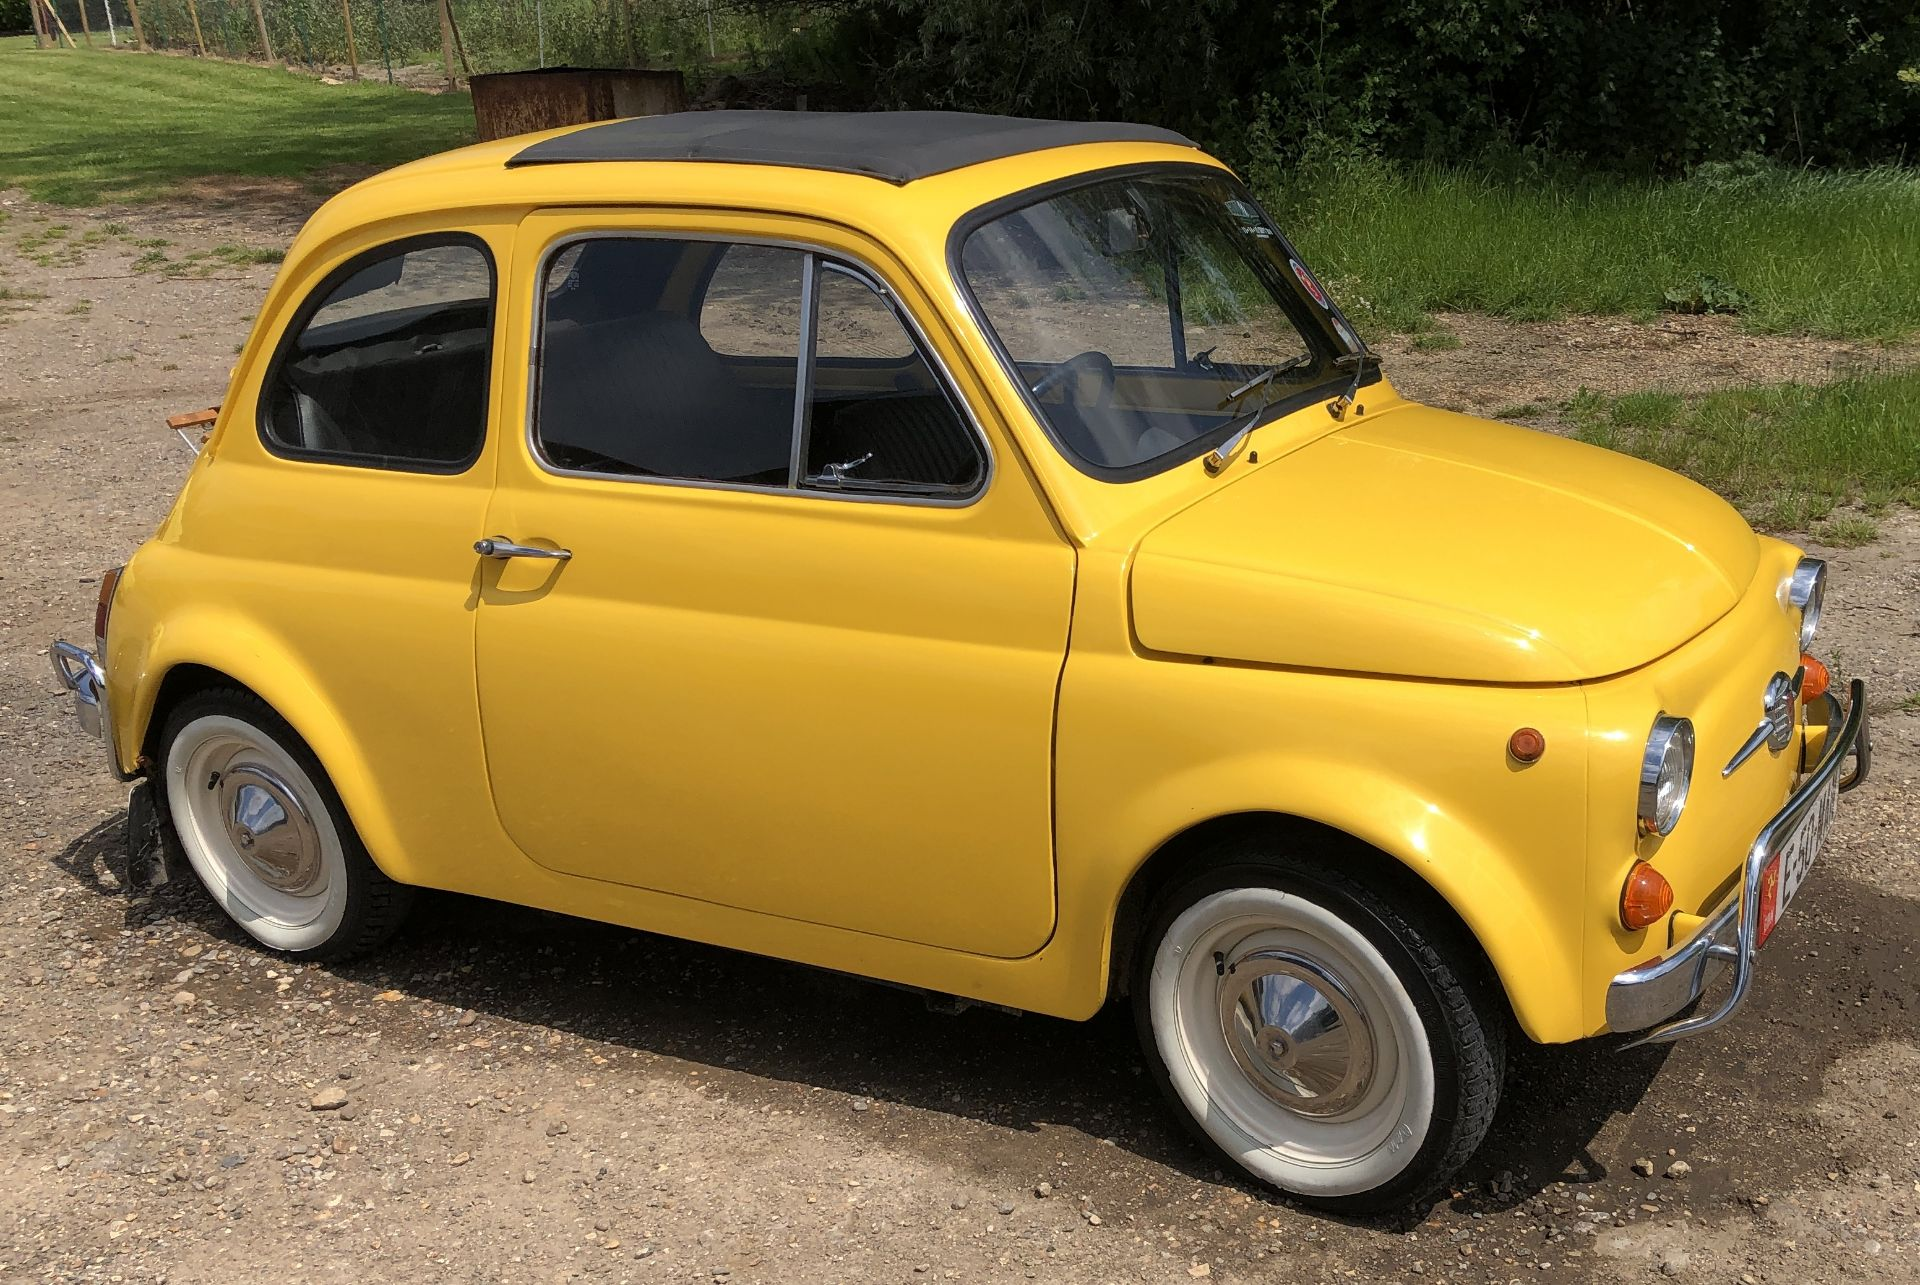 1972 Fiat 500 Saloon, Registration E-50-Man (IOM, Formally Registered as TGF 249L), First Registered - Image 4 of 34